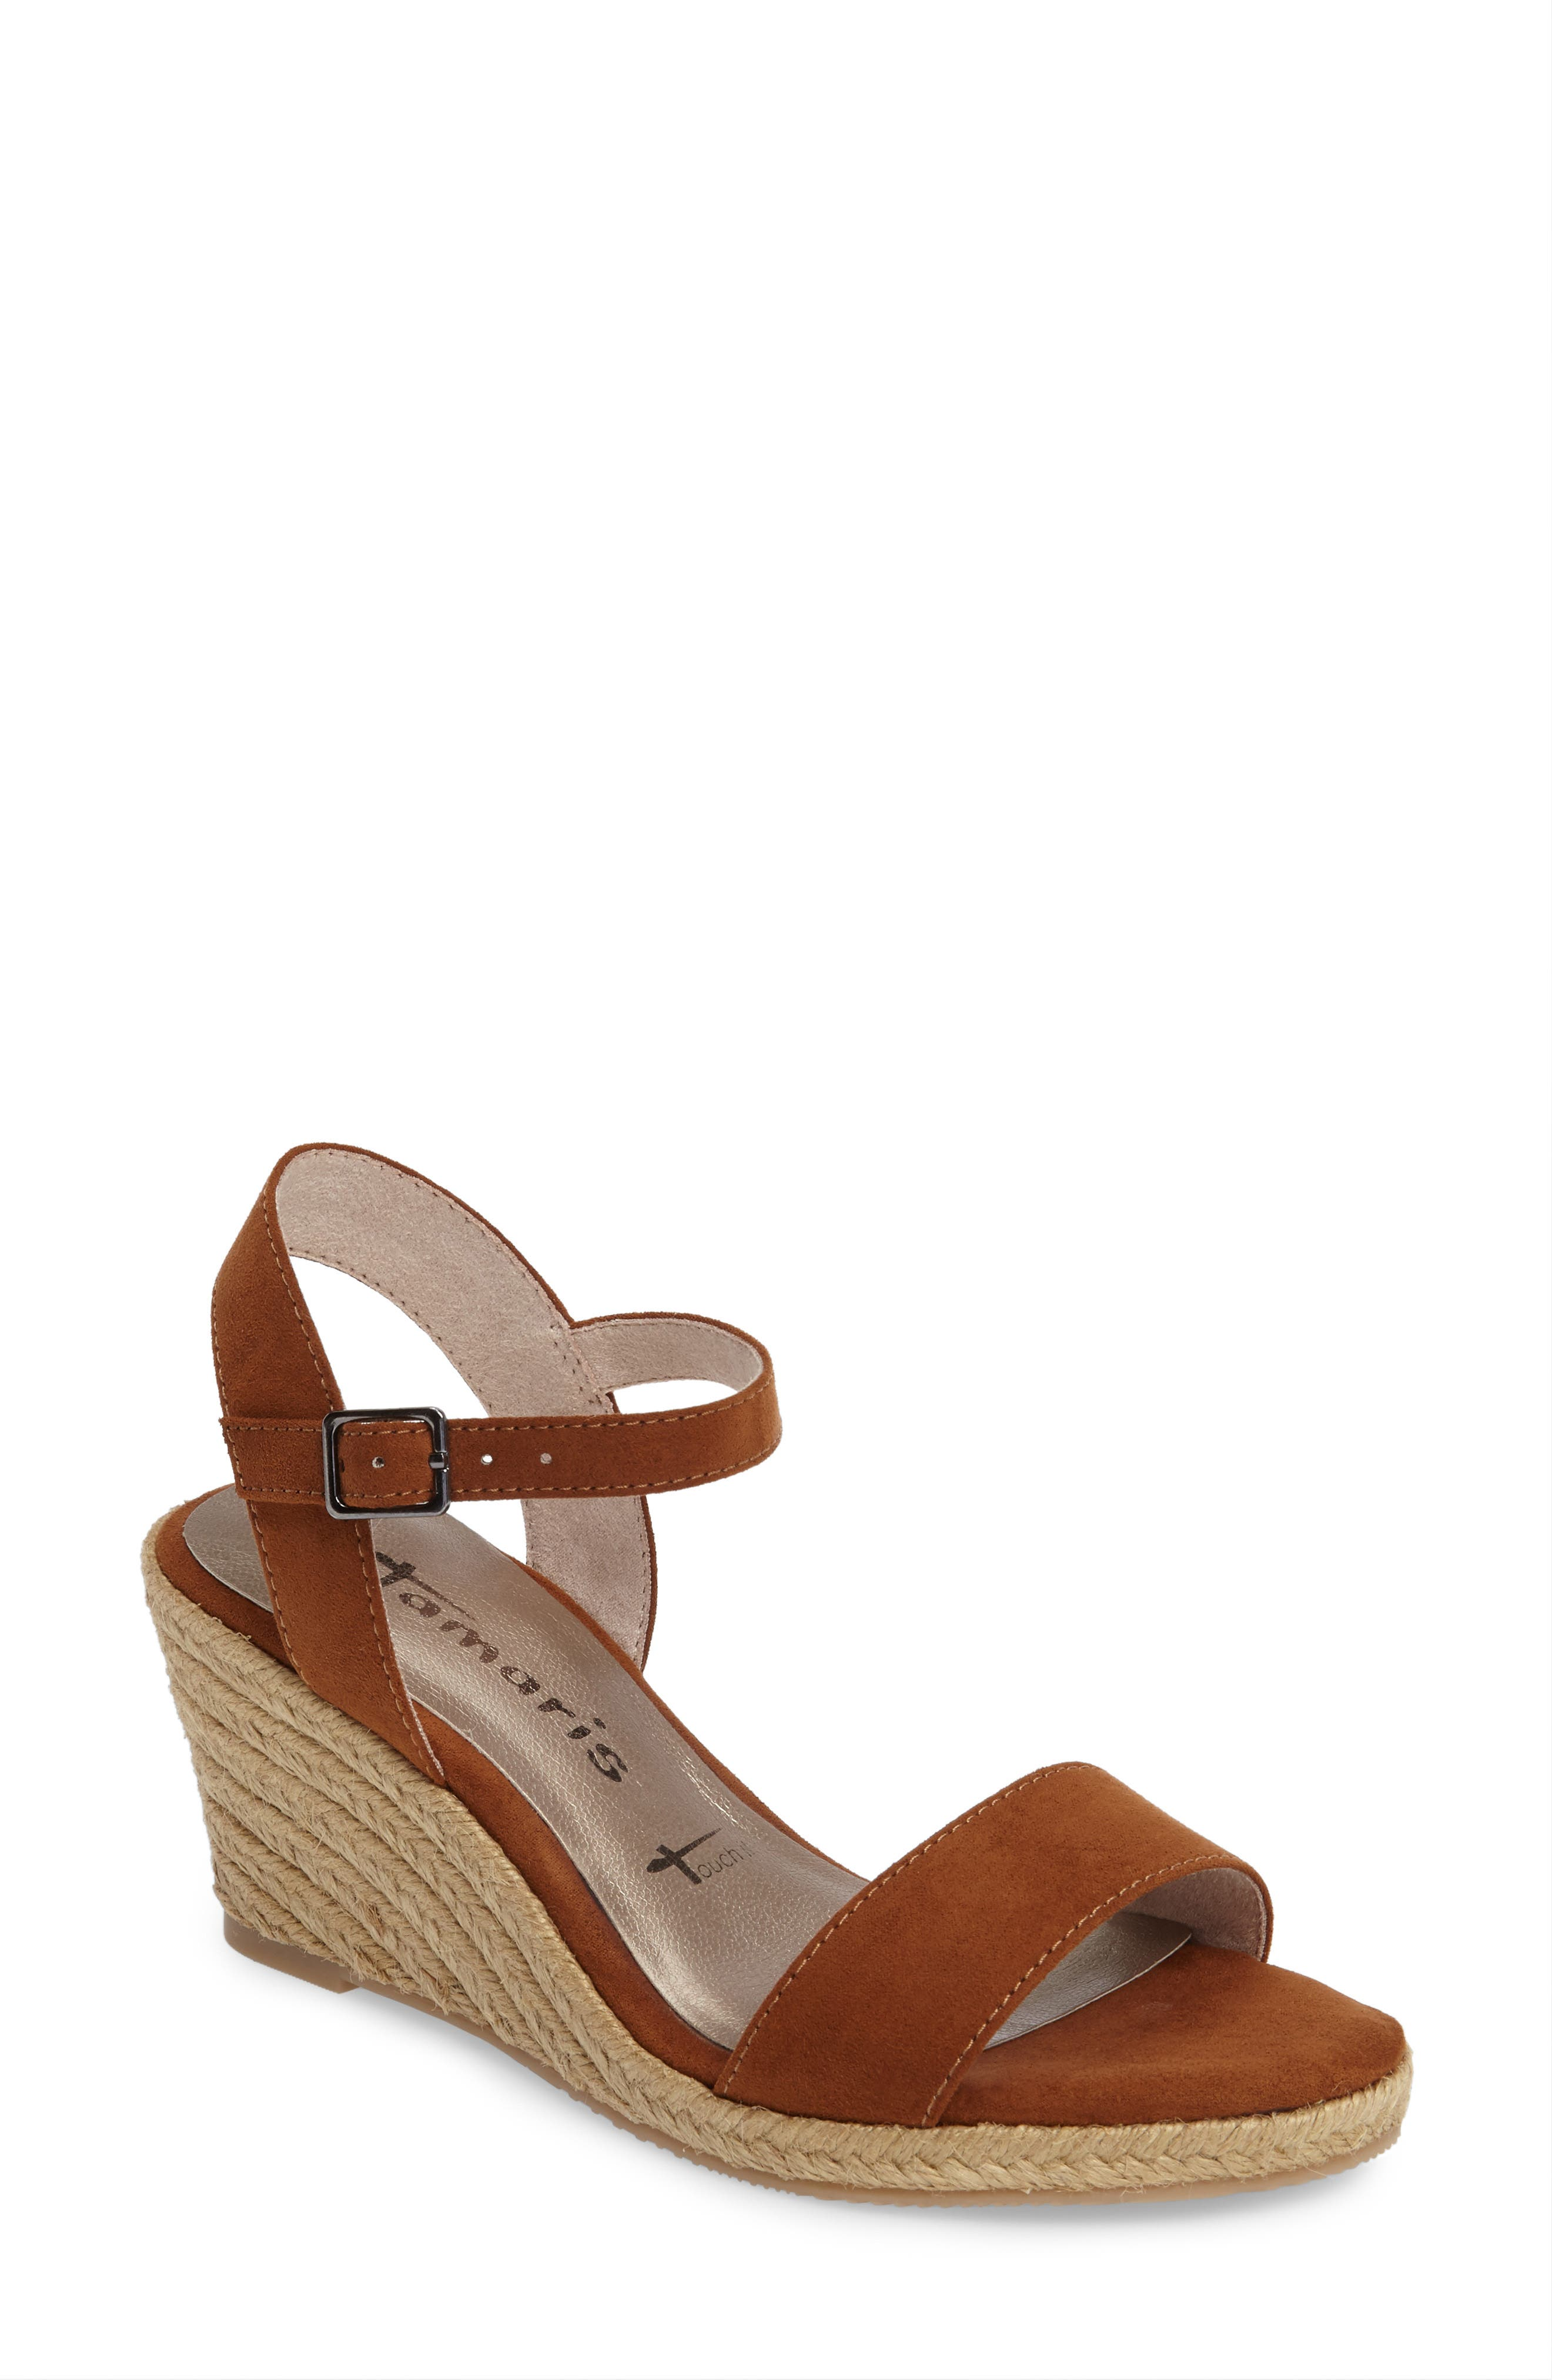 Tamaris Livia Espadrille Wedge Sandal (Women)